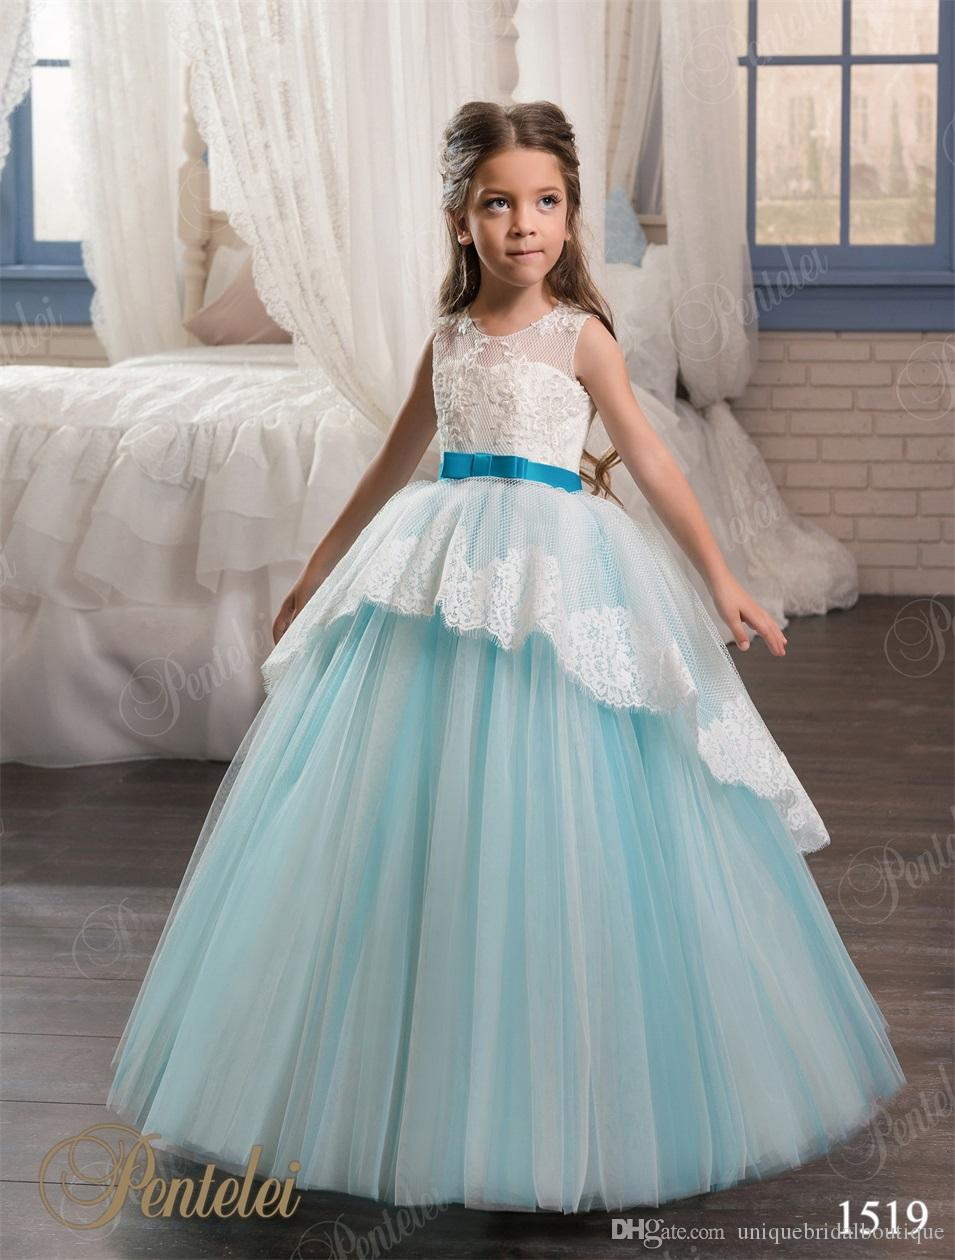 girls wedding dresses 2017 pentelei with lace up back and bow sash  appliques tulle sky blue flower girls gowns for weddings canada 2019 from